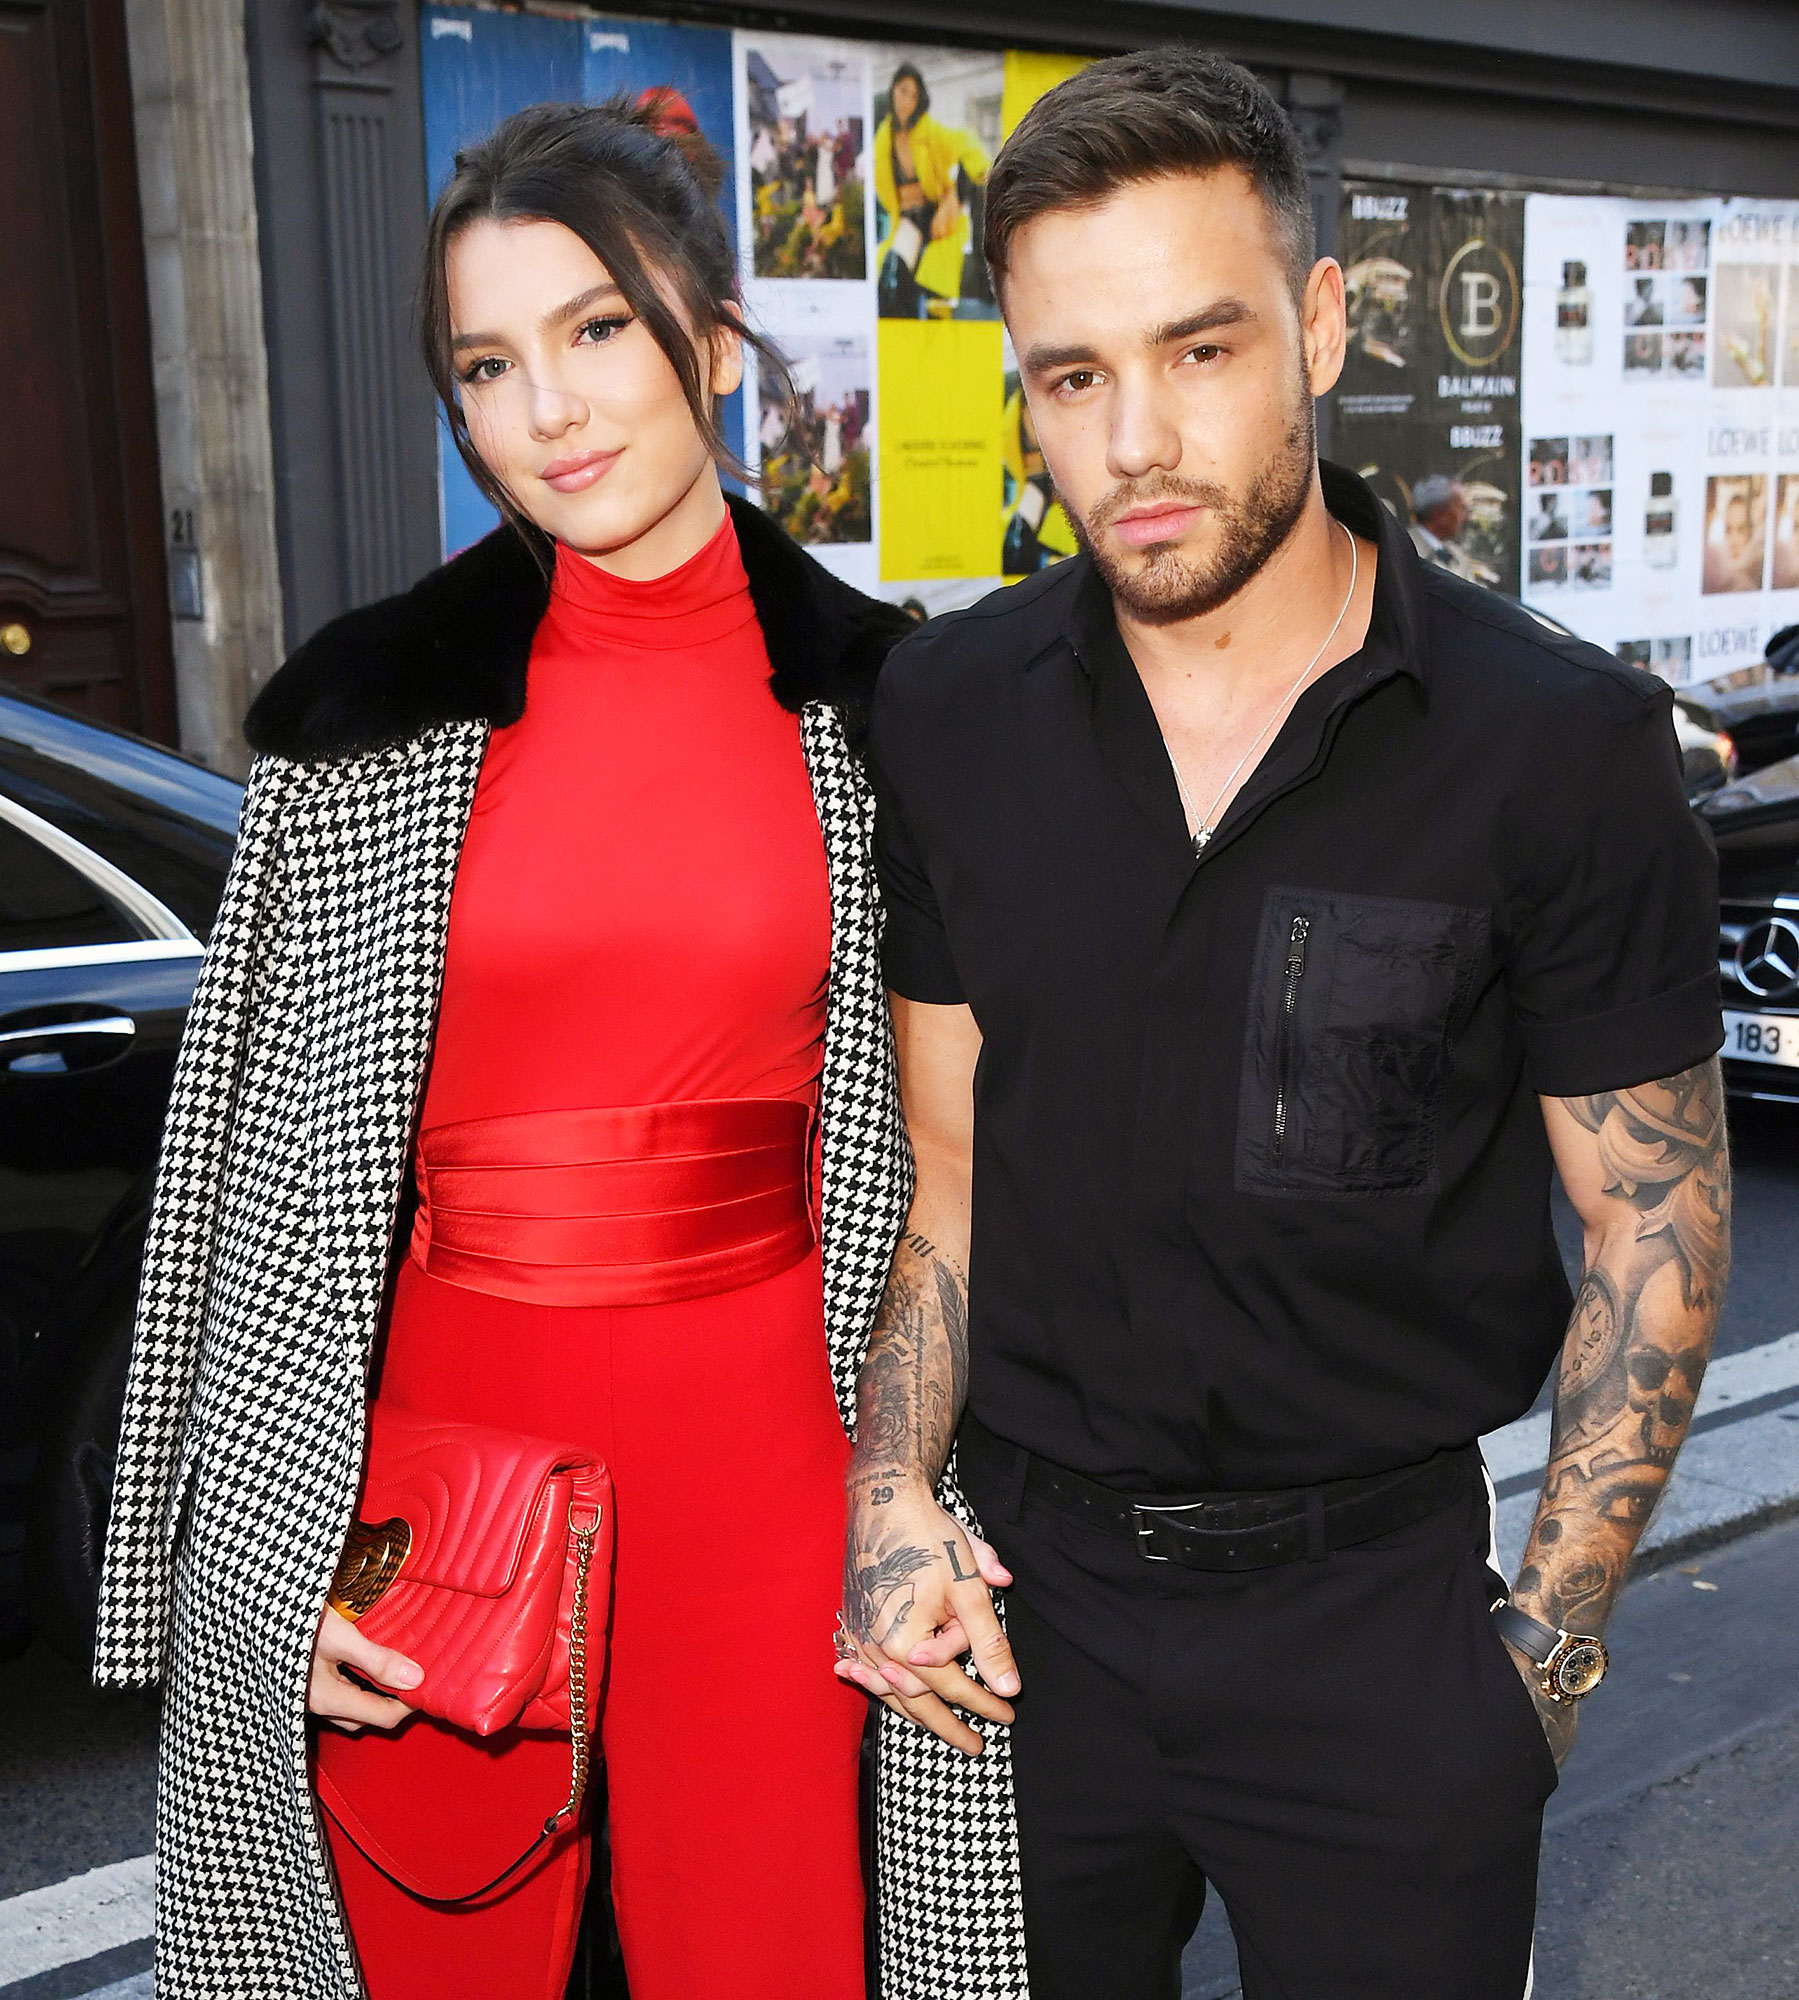 Maya Henry and Liam Payne at Paris Fashion Week Liam Payne Shuts Down Speculation About Girlfriend Maya Henry's Real Age